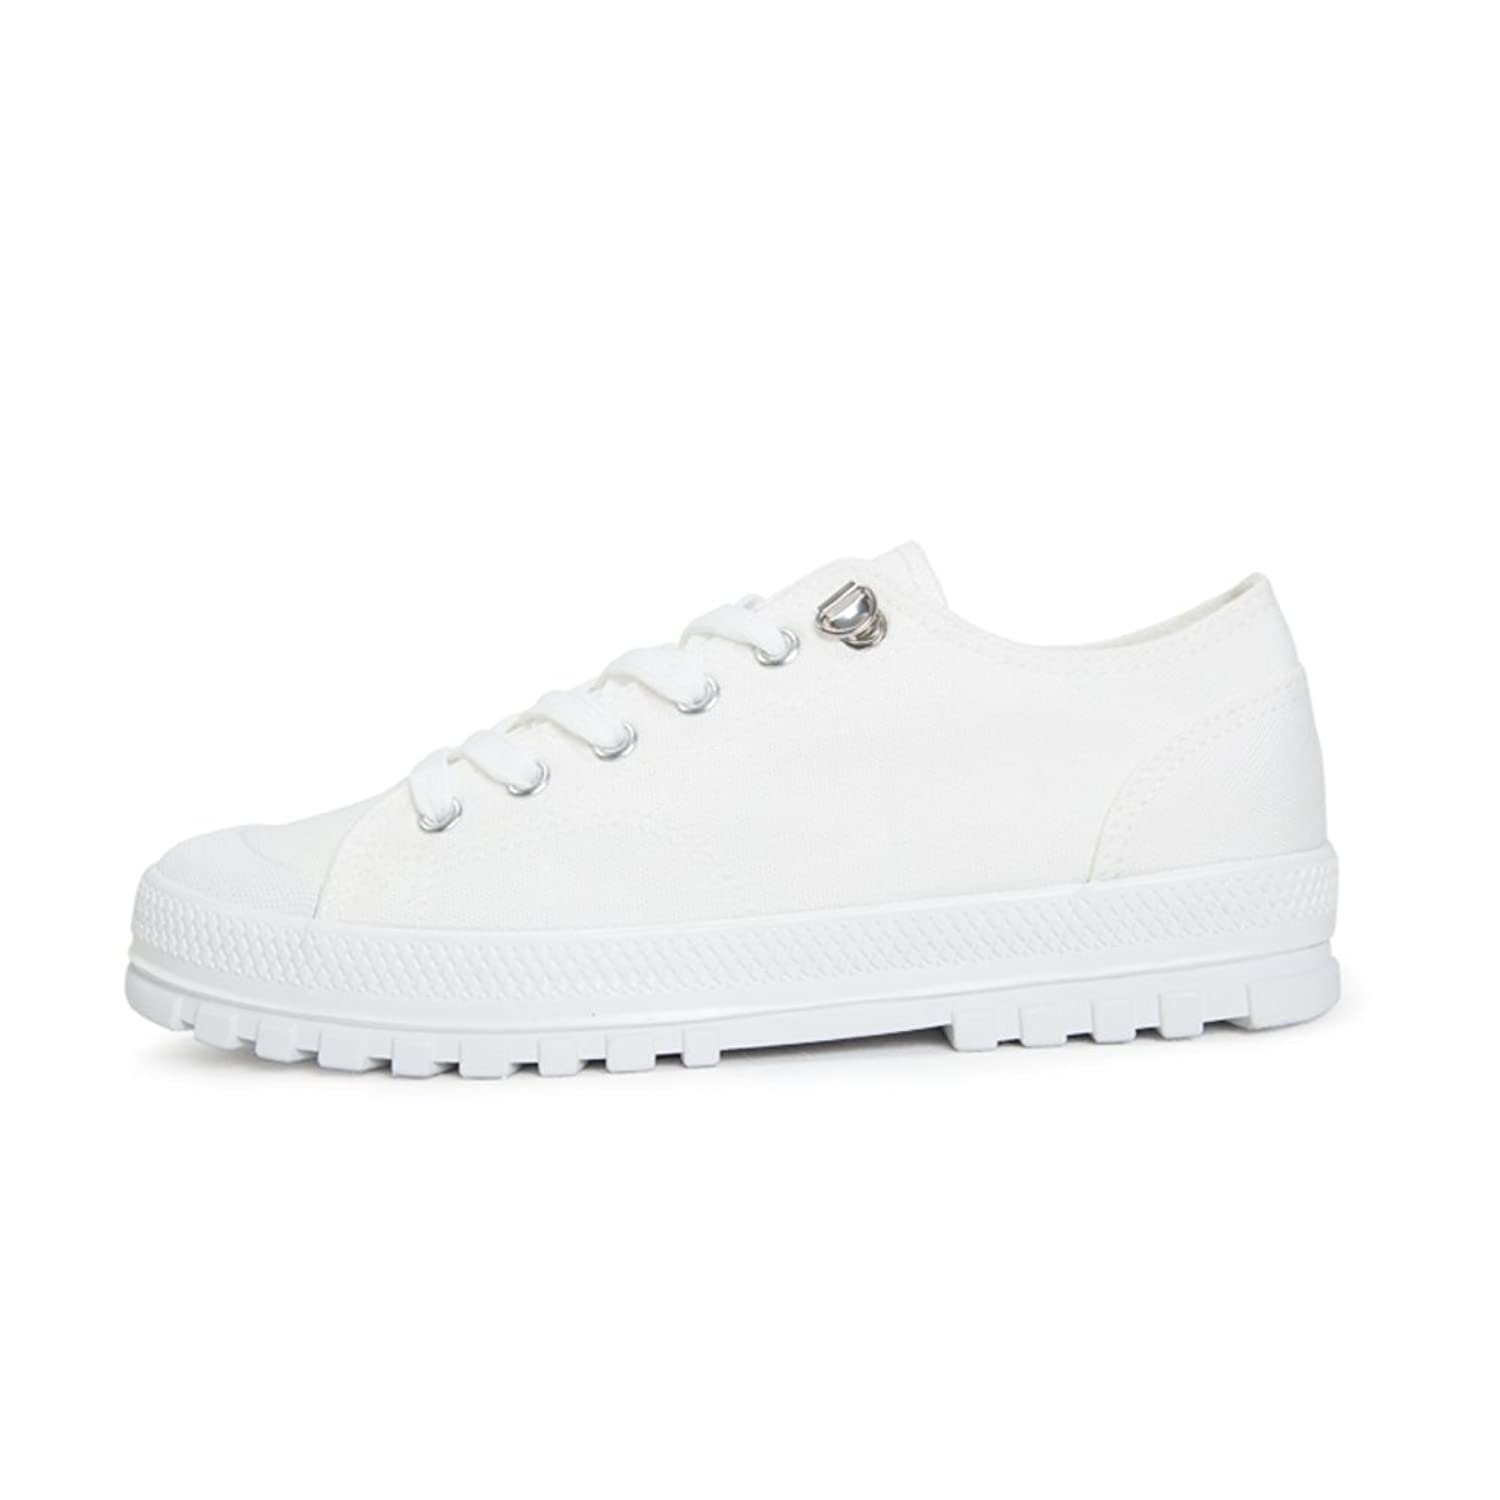 Casual fashion thick wear resistant canvas shoe lacing